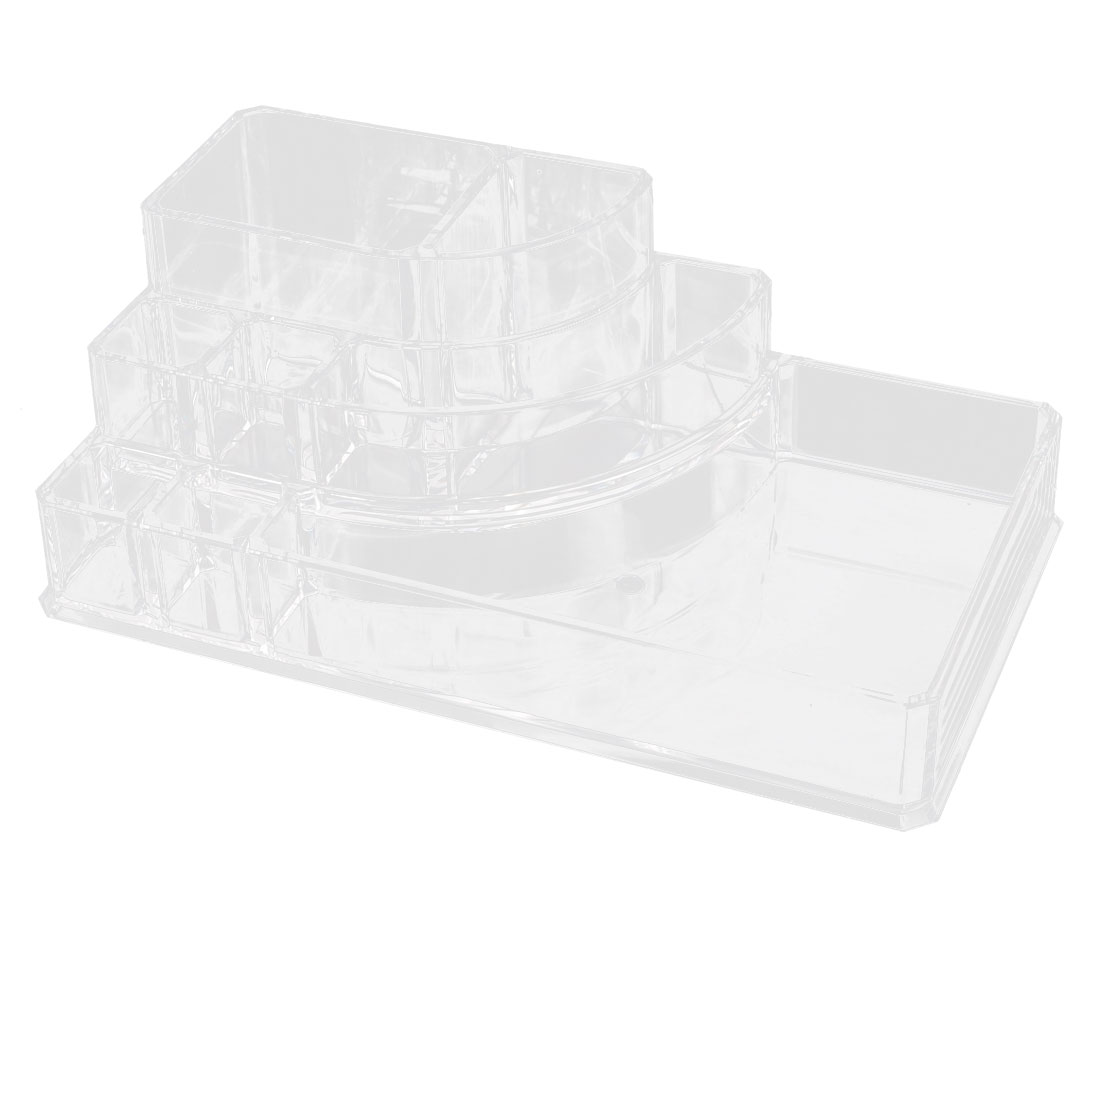 Acrylic 8 Slots Lipstick Dressing Case Jewelry Storage Box Organizer Clear